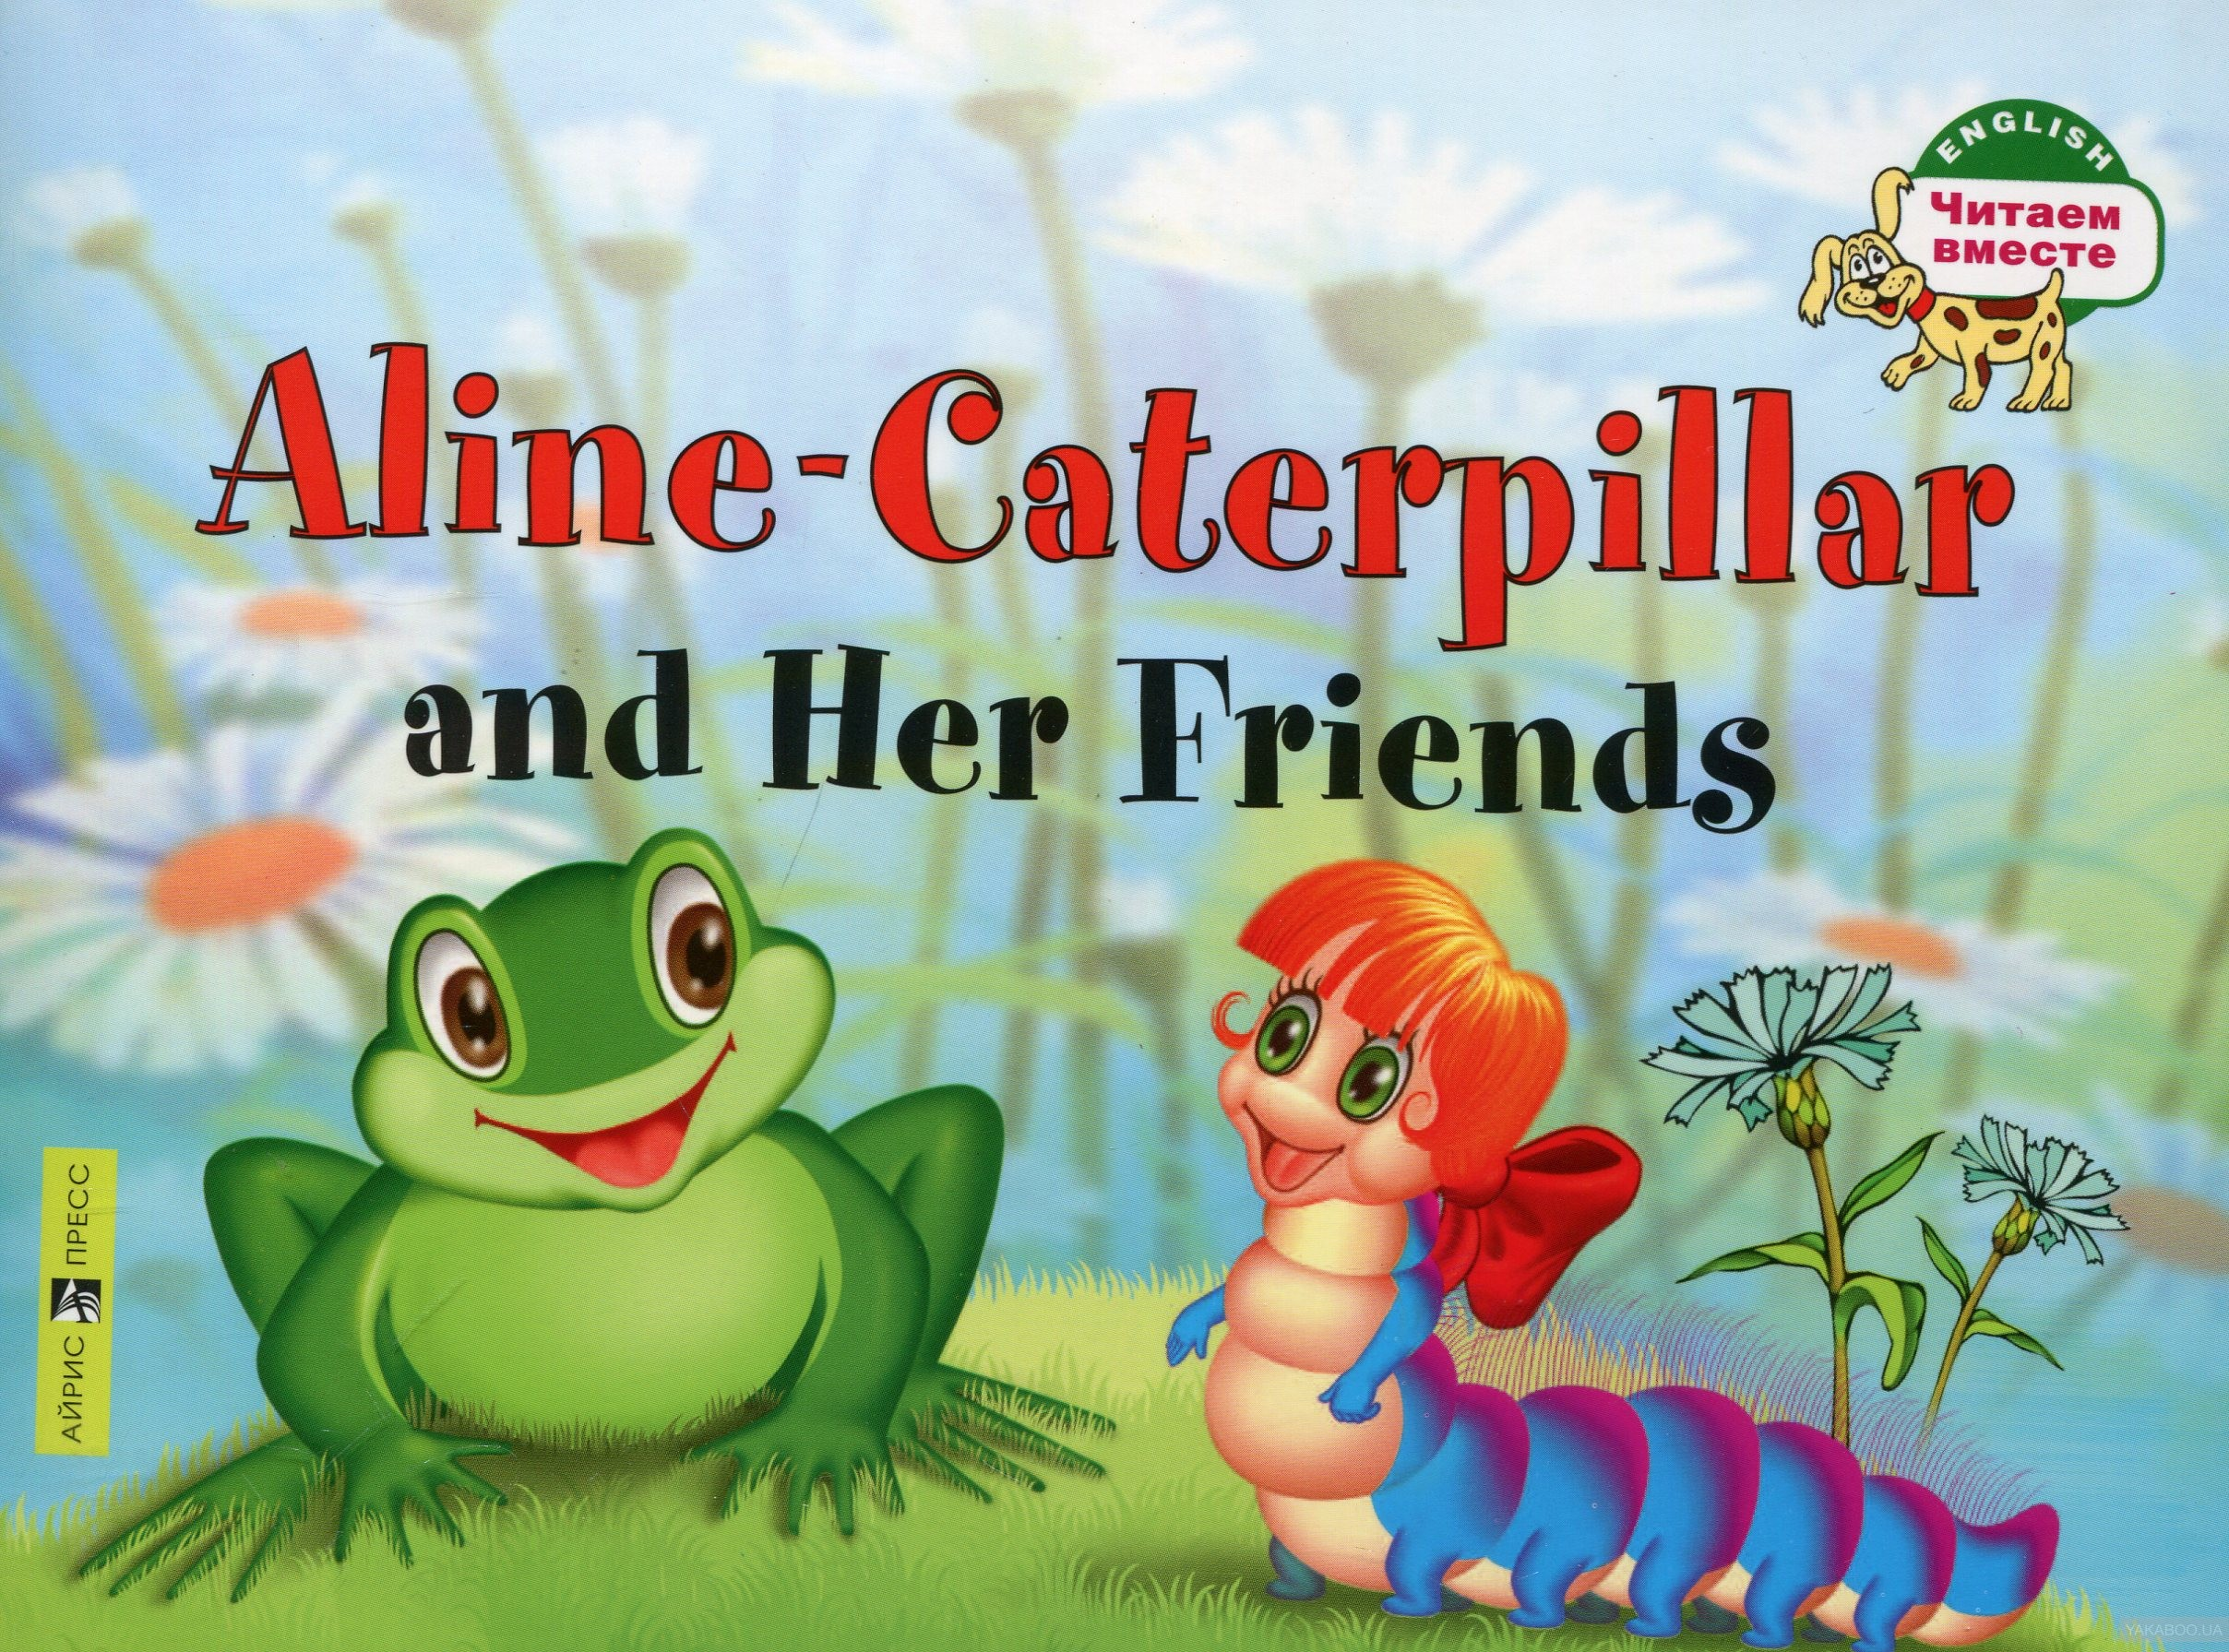 Aline-Caterpillar and Her Friends / Гусеница Алина и ее друзья фото